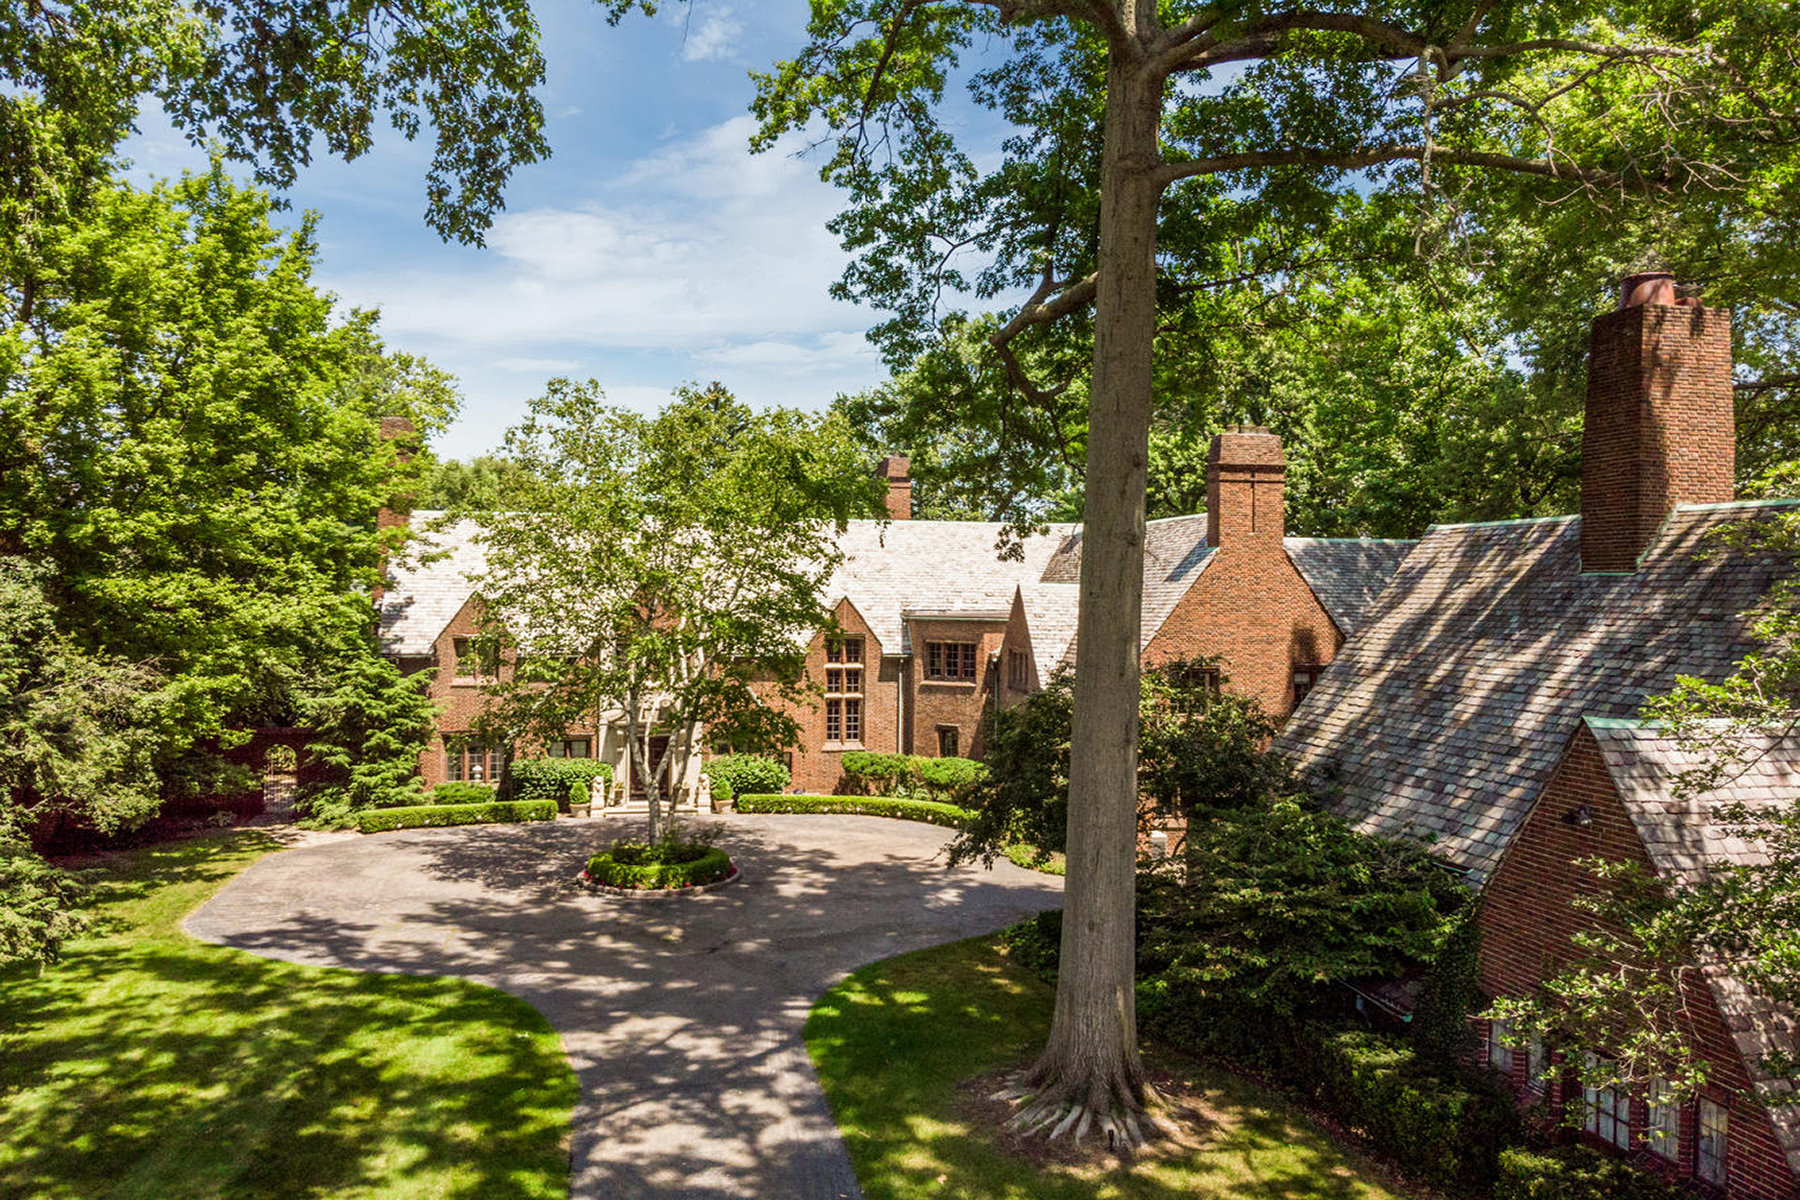 Single Family Homes for Sale at Grosse Pointe Farms 330 Provencal Road Grosse Pointe Farms, Michigan 48236 United States